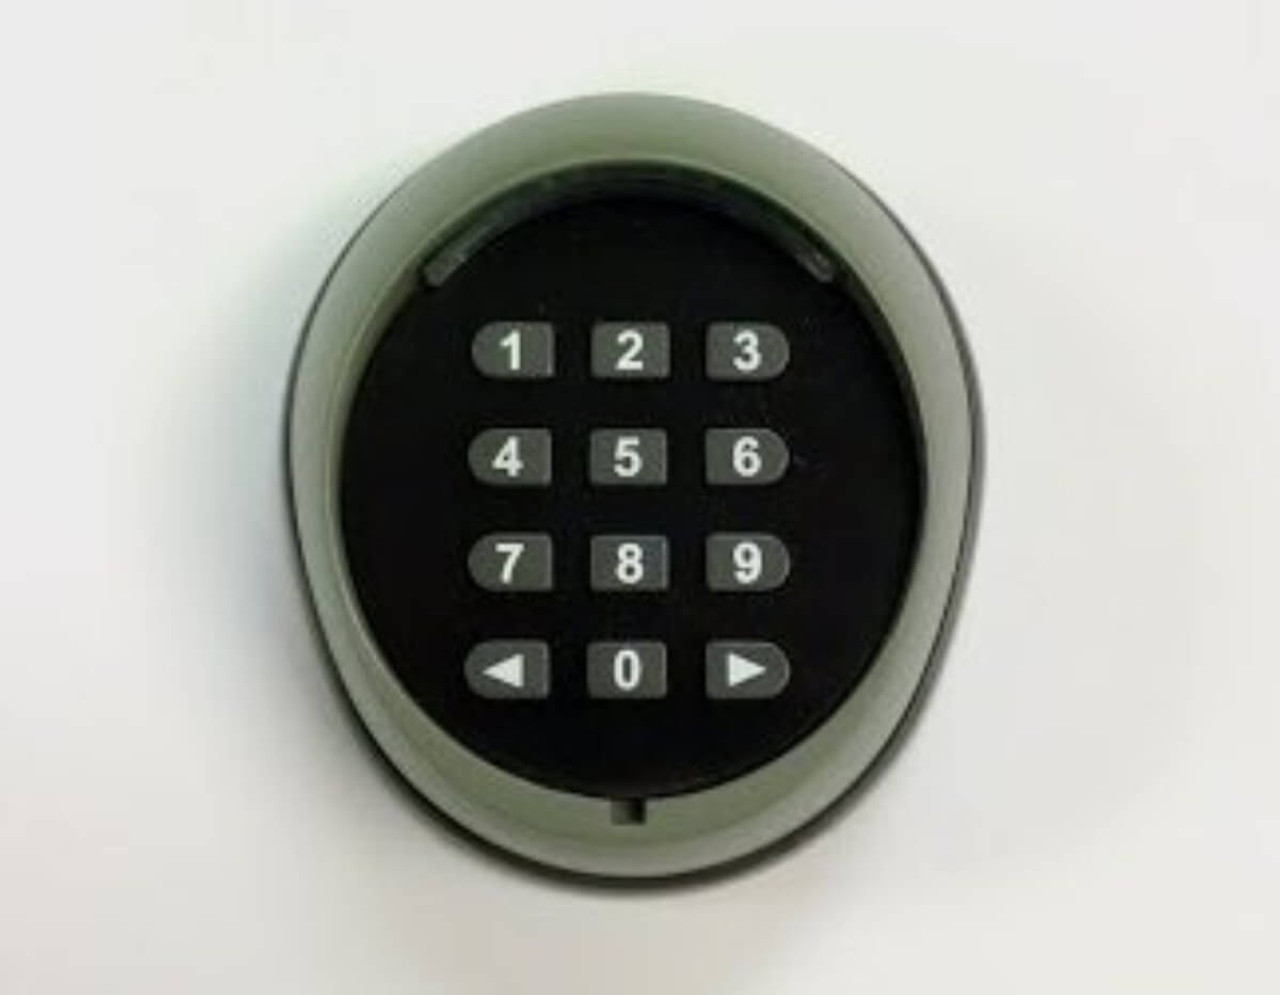 Autoslide Motorized Sliding Glass Door Opener With ILock Can Use The Key  Pad Shown To Open